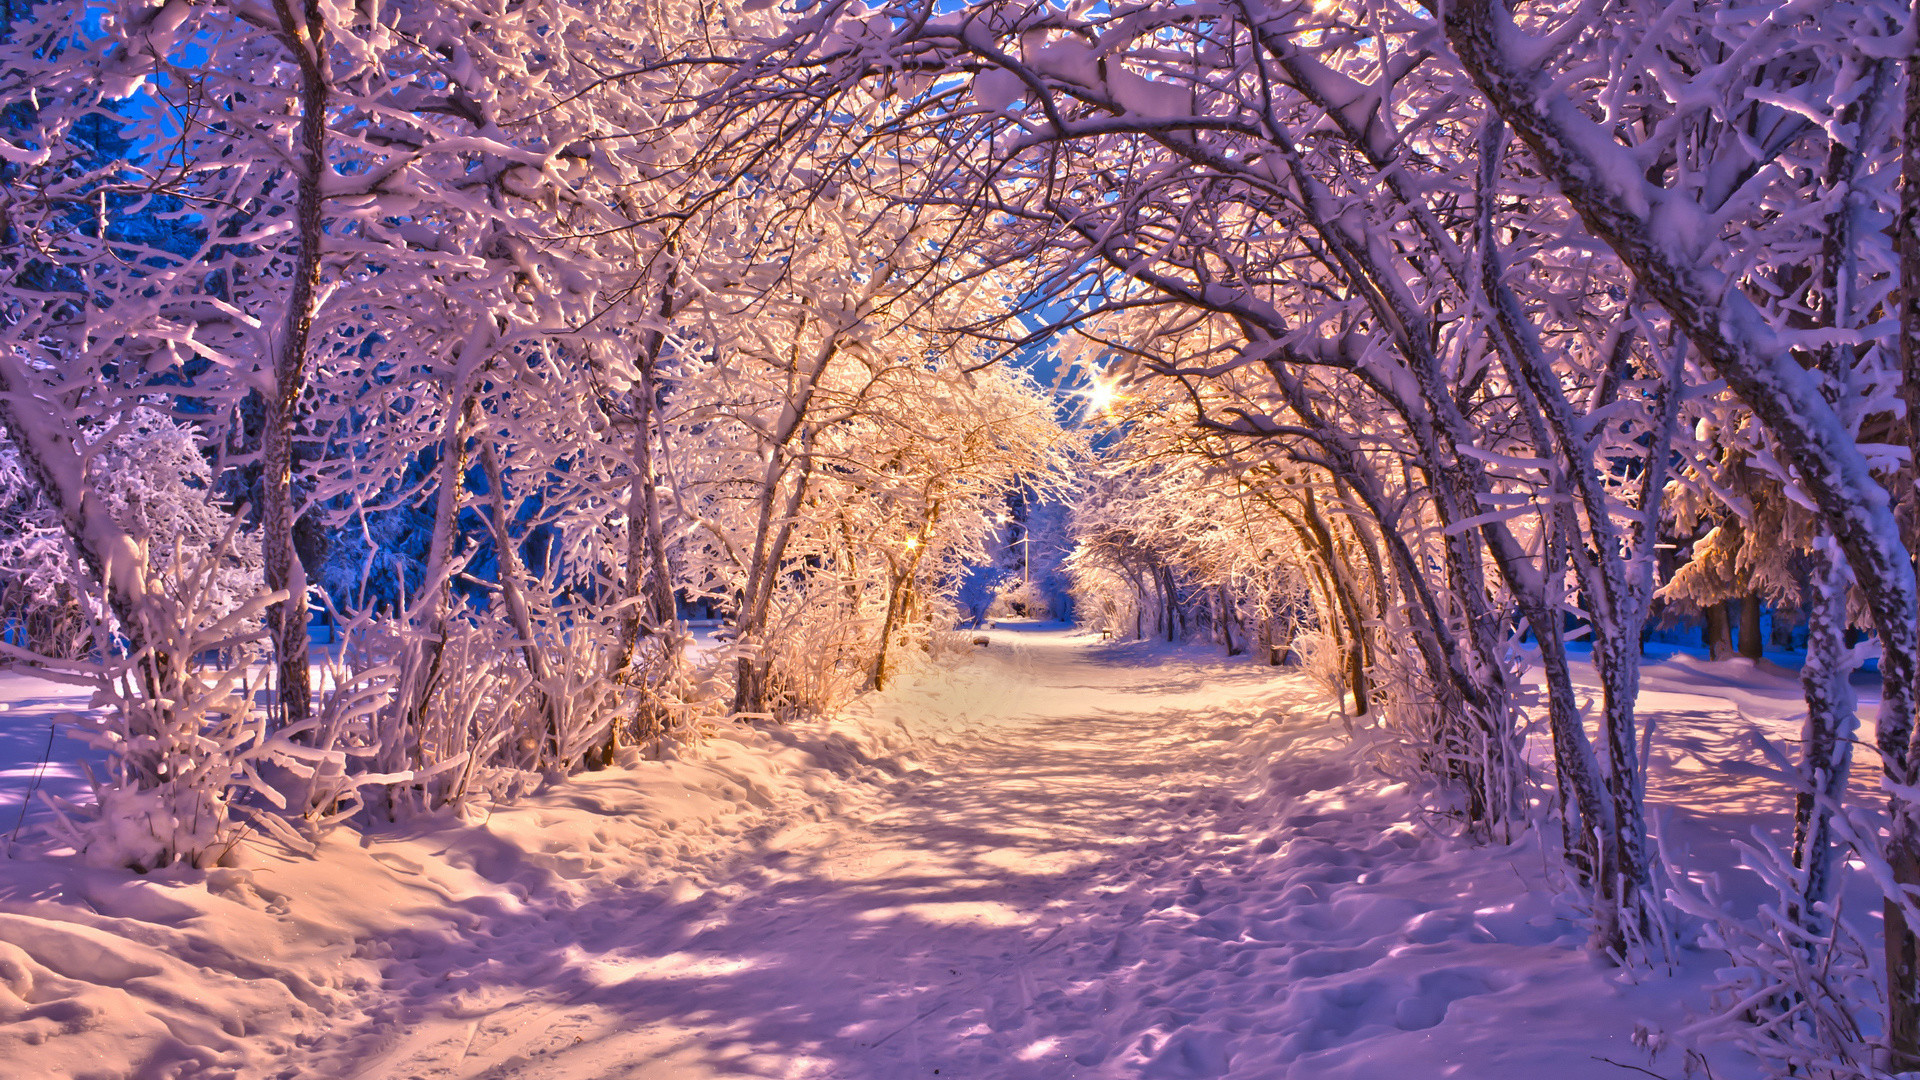 1920x1080 snow christmas sidewalk roads lights white trees wallpaper background .